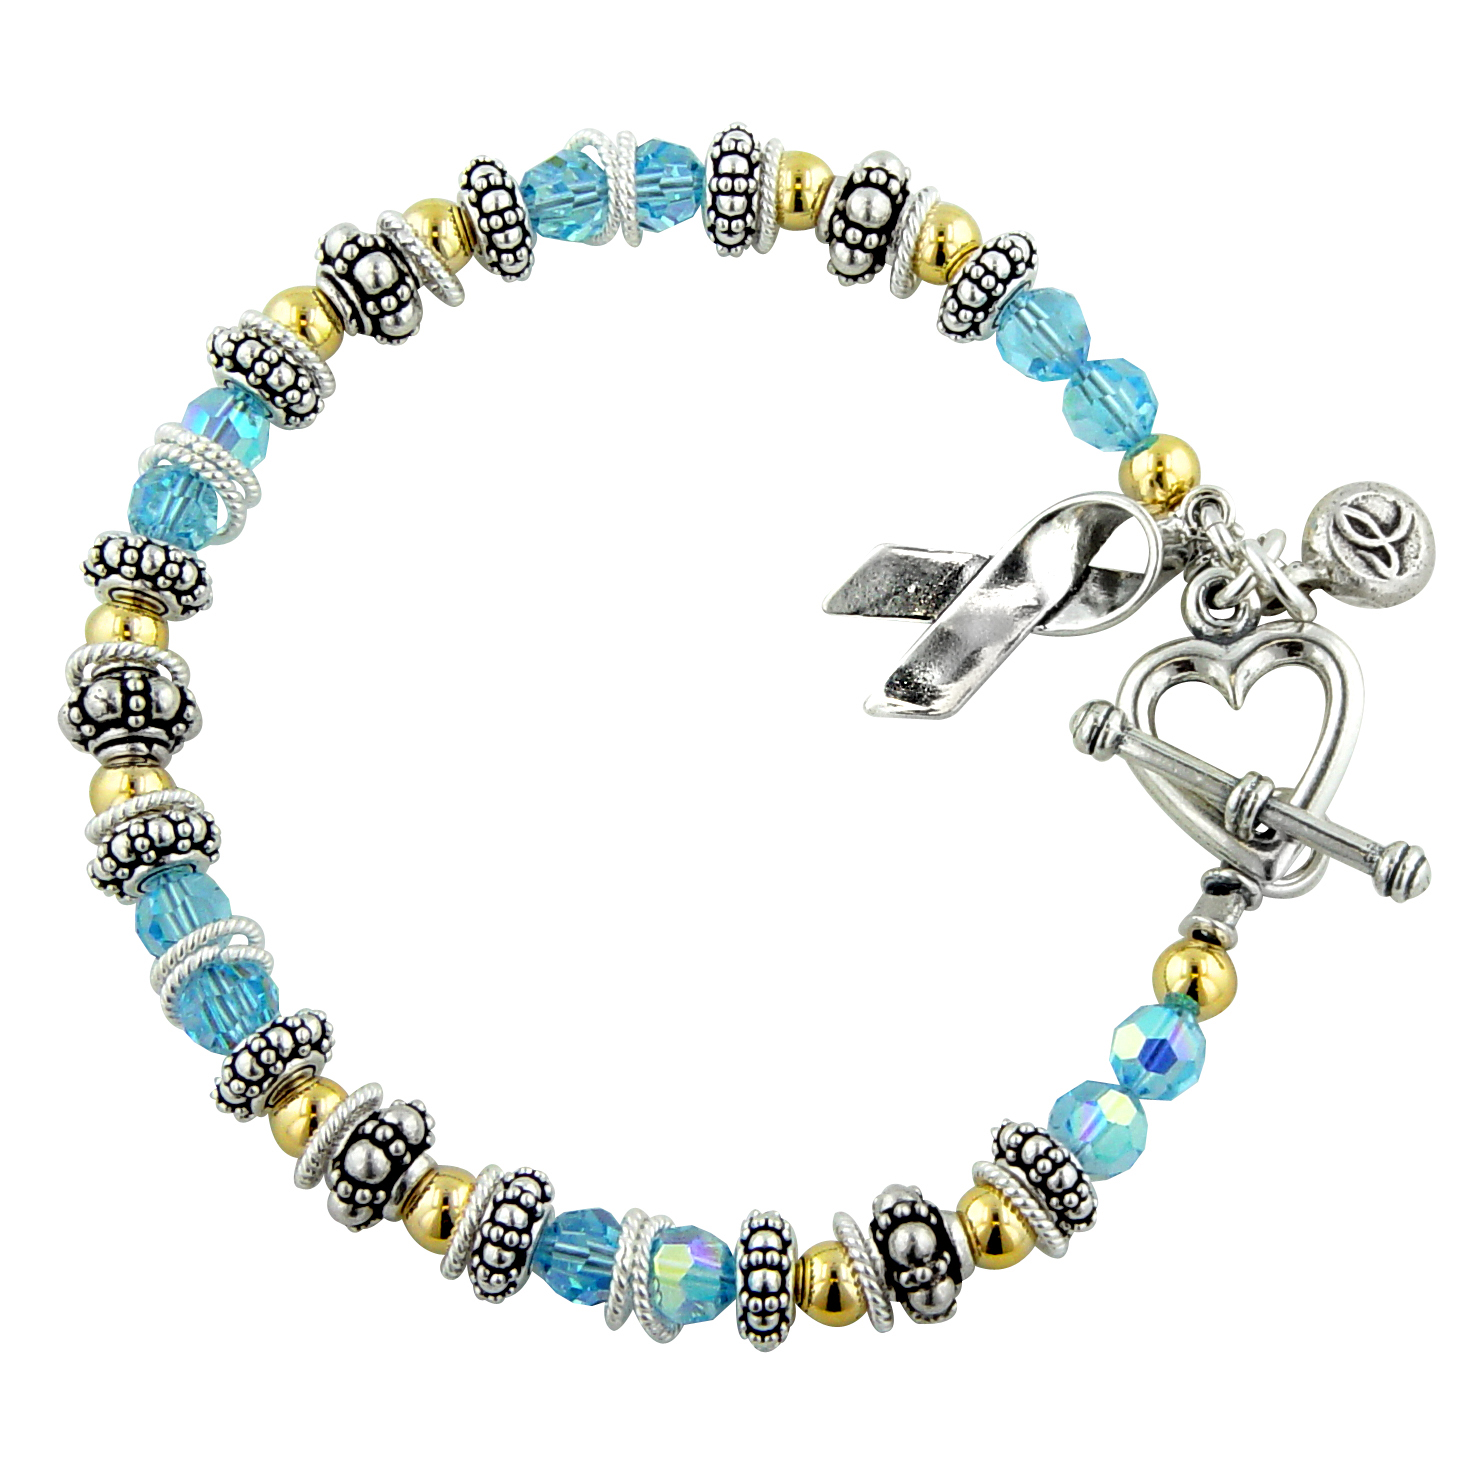 charm brain colon img awareness tagged cancer meaningful expandable gift gray bracelets adjustable collections bracelet silver bangle ribbon